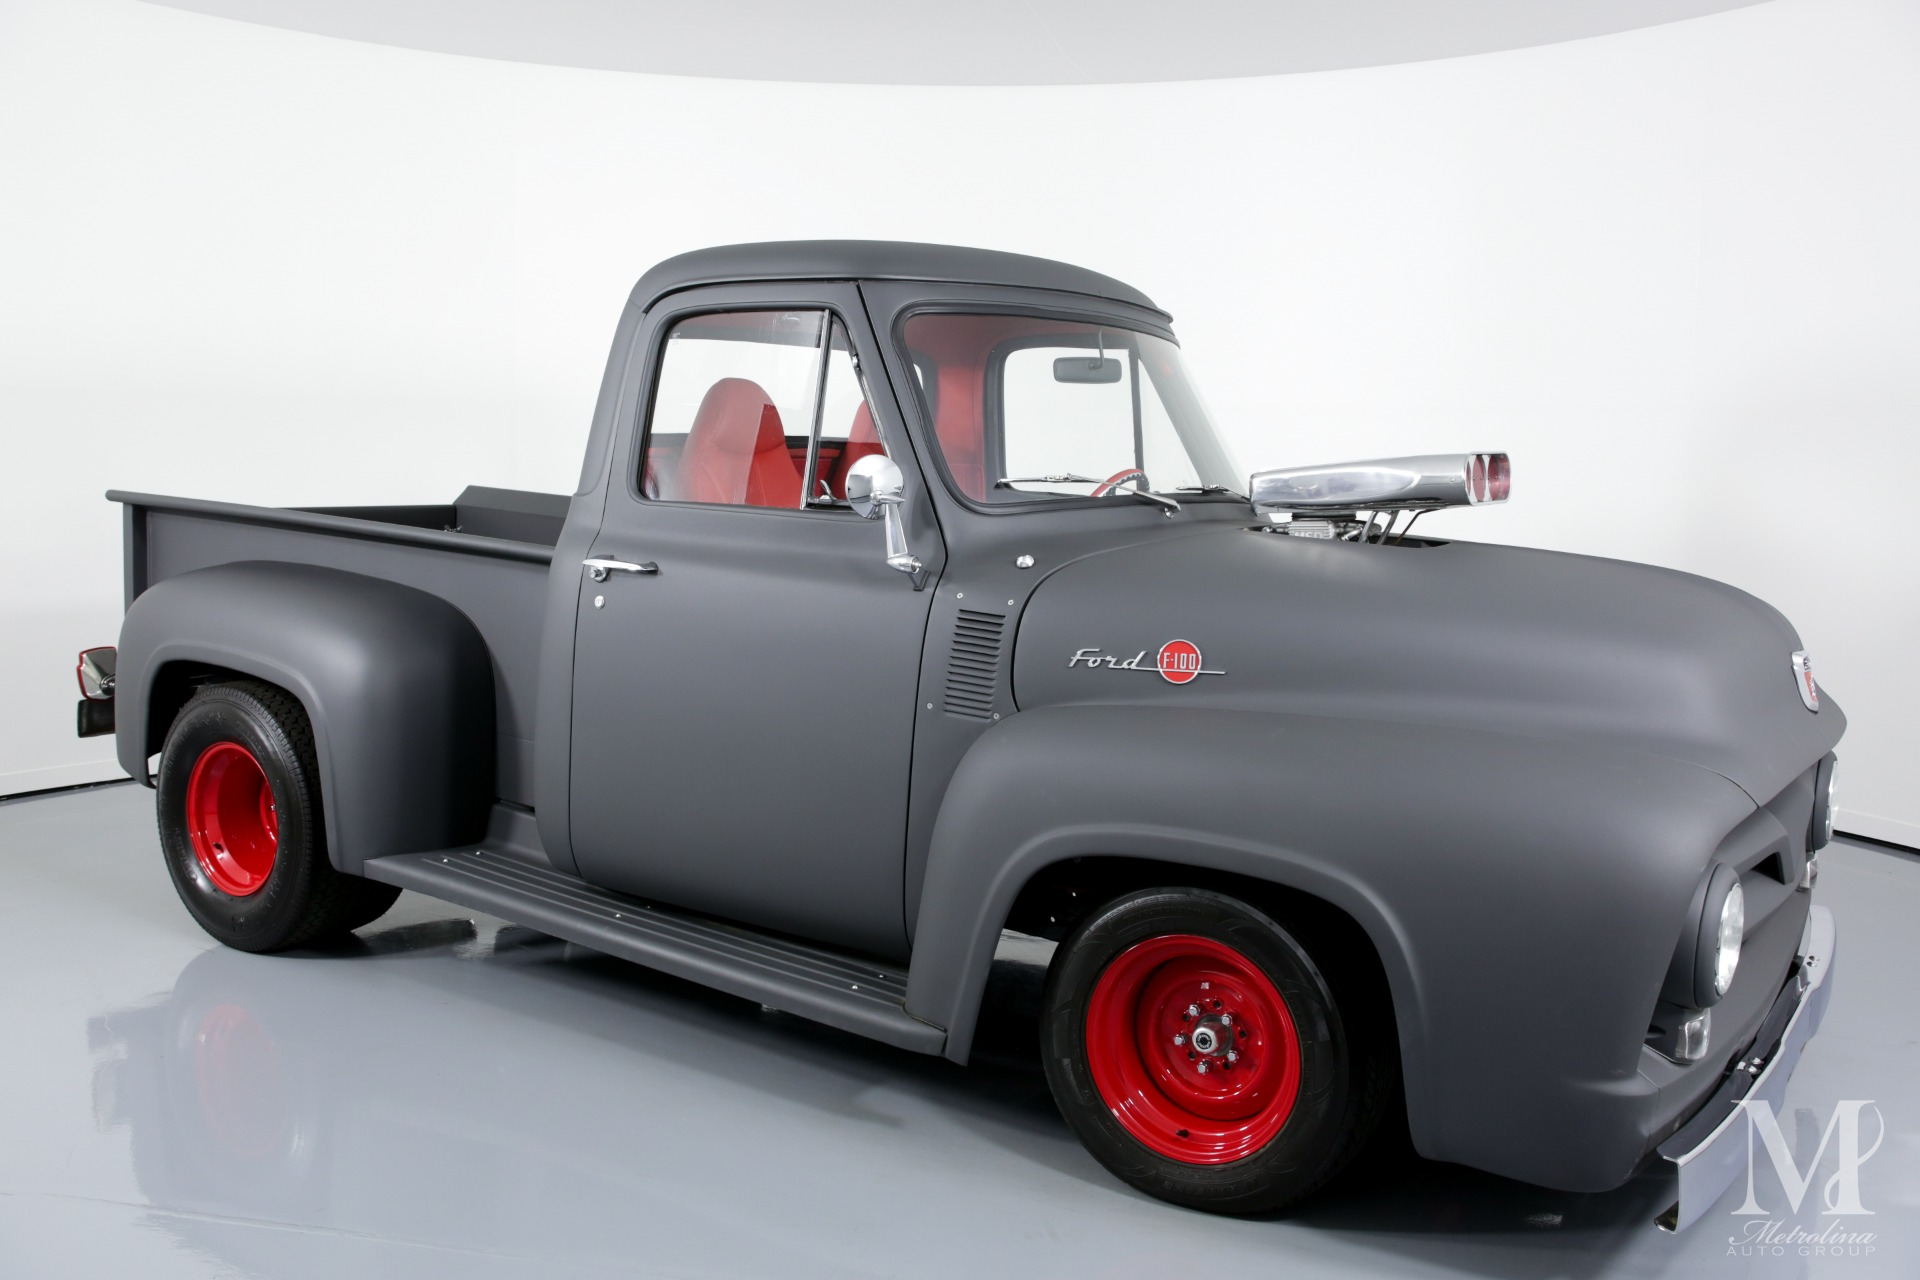 Used 1955 Ford F-100 for sale $99,996 at Metrolina Auto Group in Charlotte NC 28217 - 2